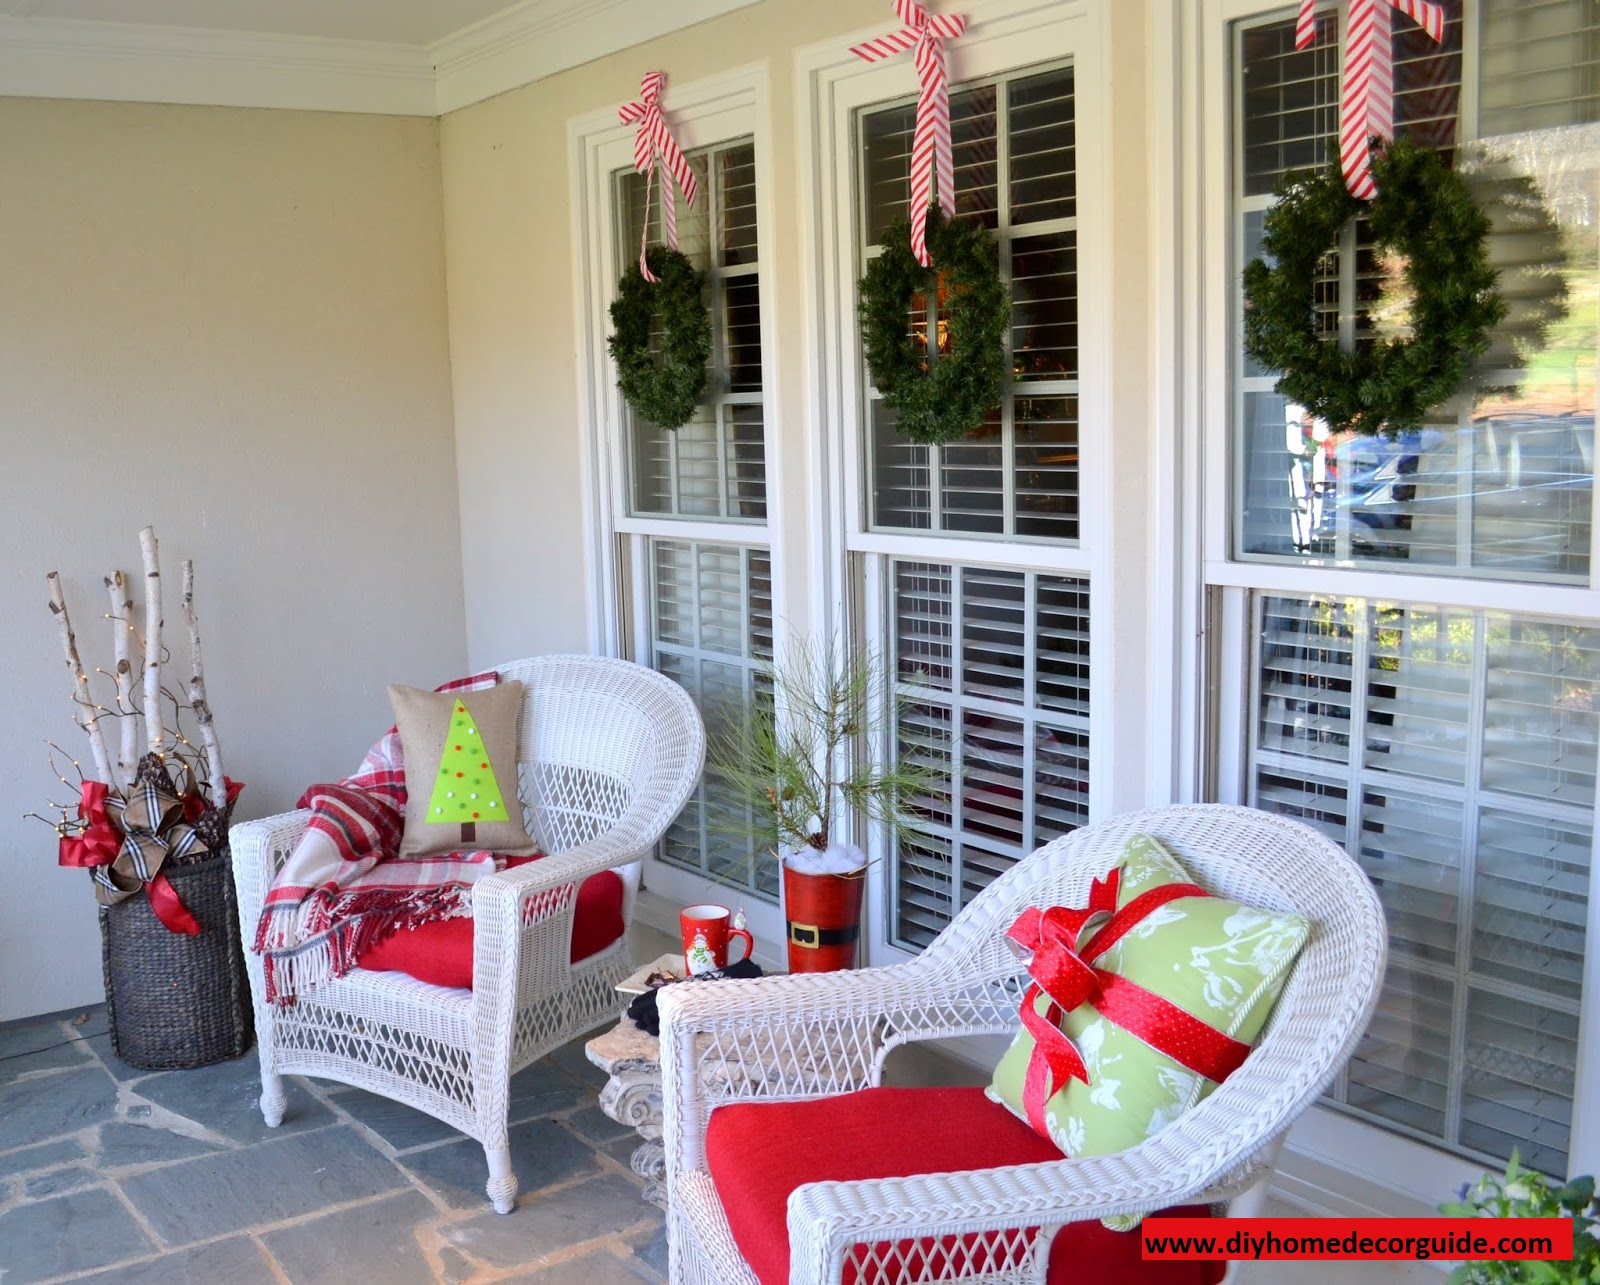 20 diy outdoor christmas decorations ideas 2014 Outside xmas decorations ideas